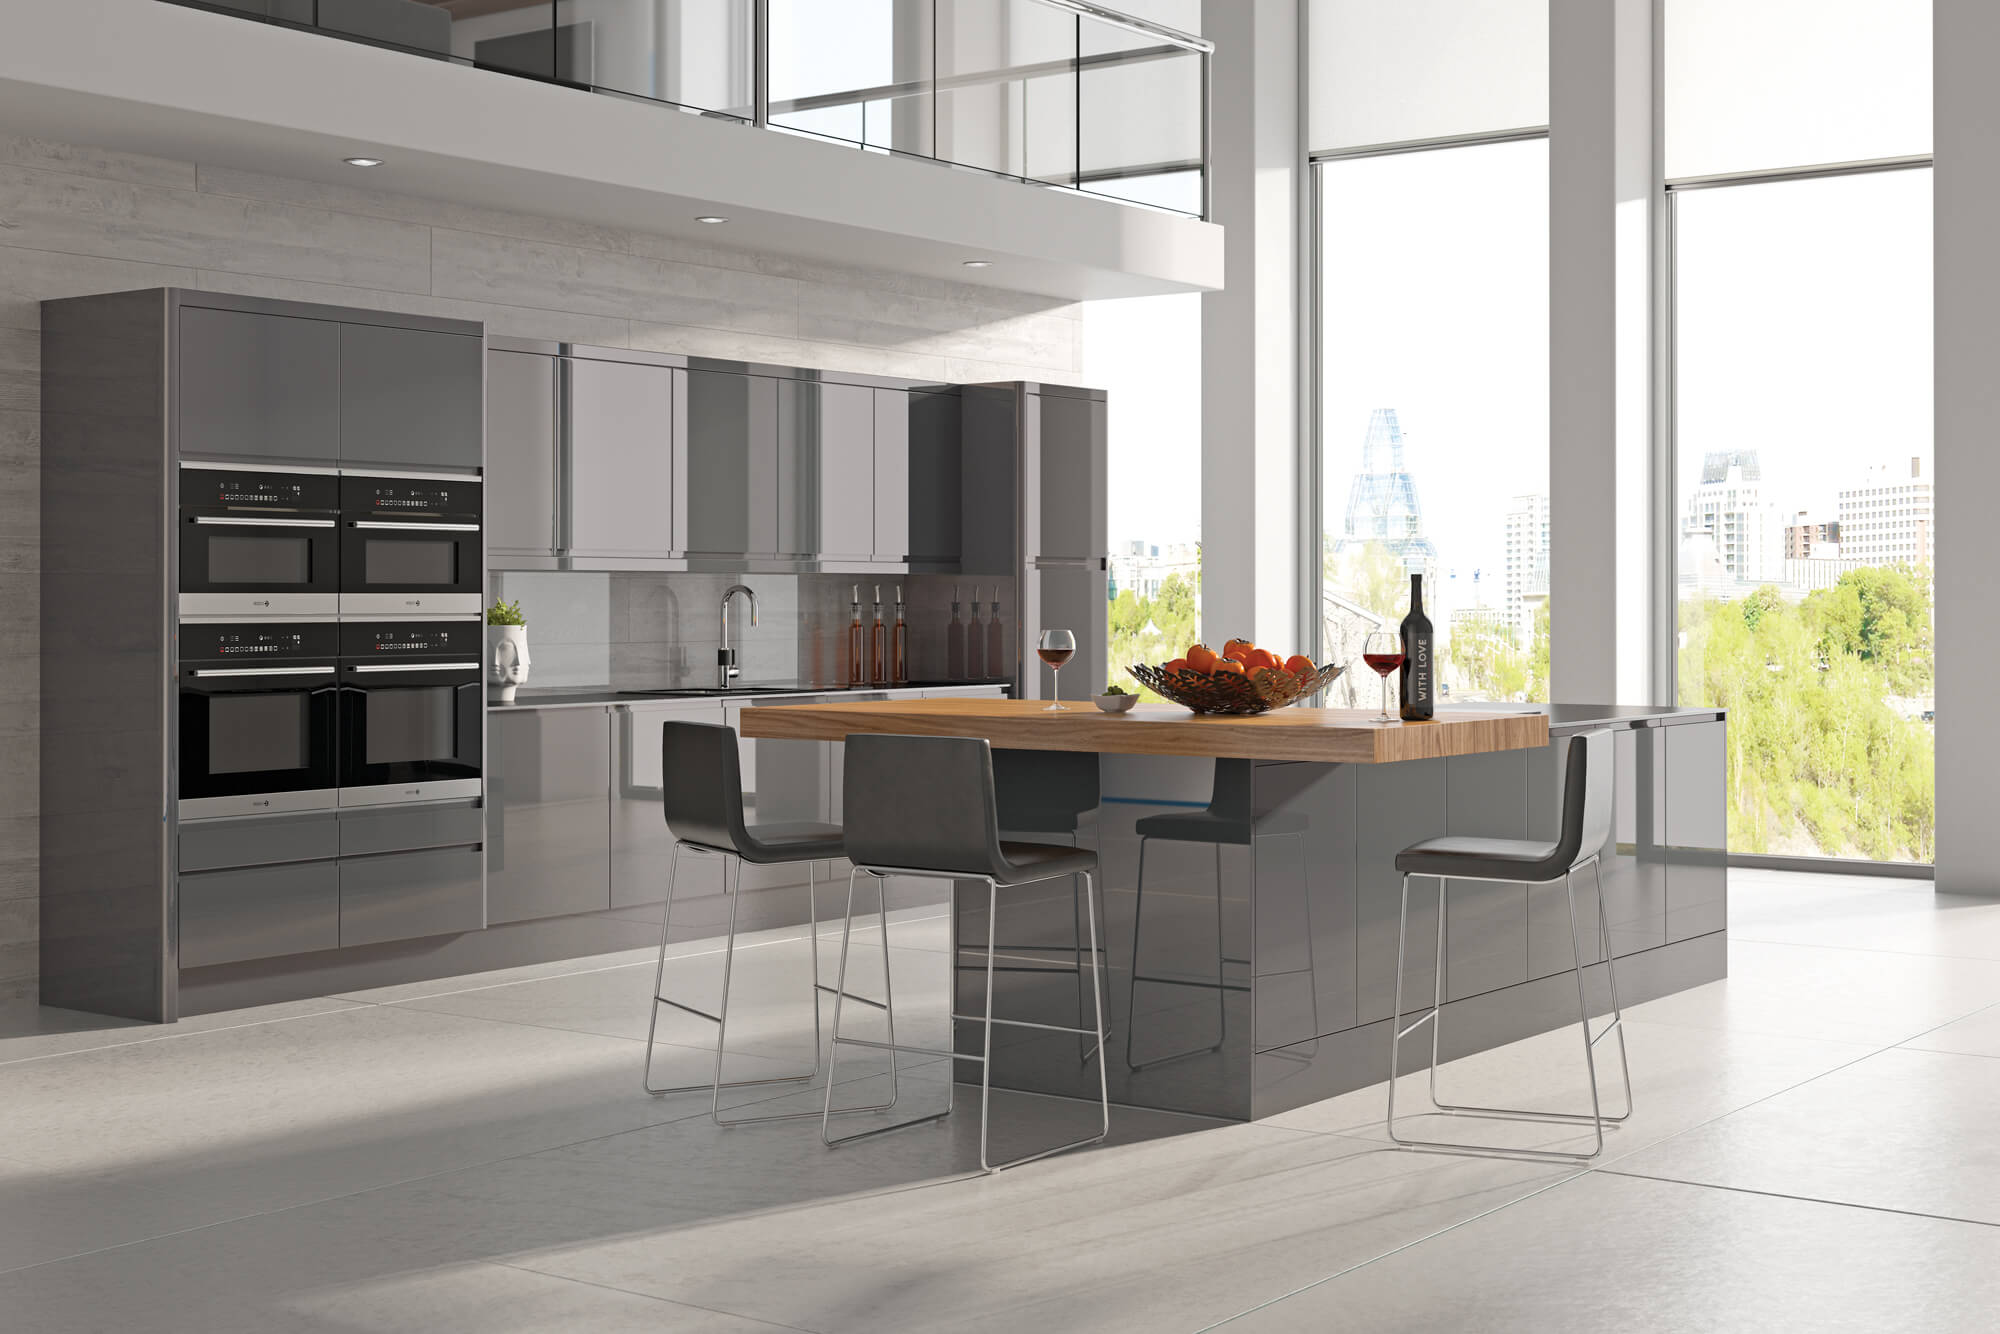 designer kitchen integra dakota sheffield